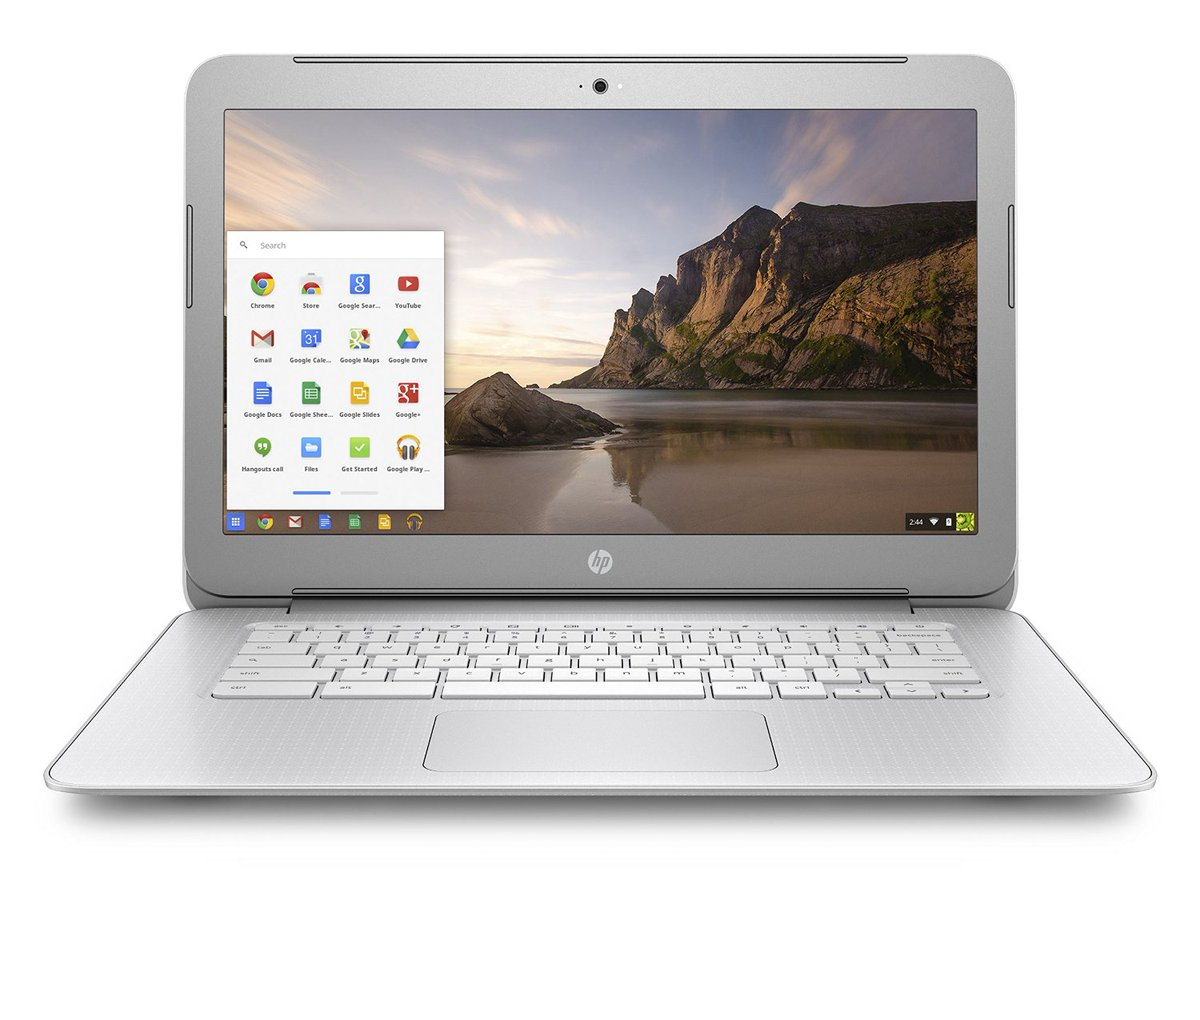 HP Chromebook 14-ak050nr 14-Inch Laptop (Intel Celeron, 4 GB RAM, 16 GB SSD)